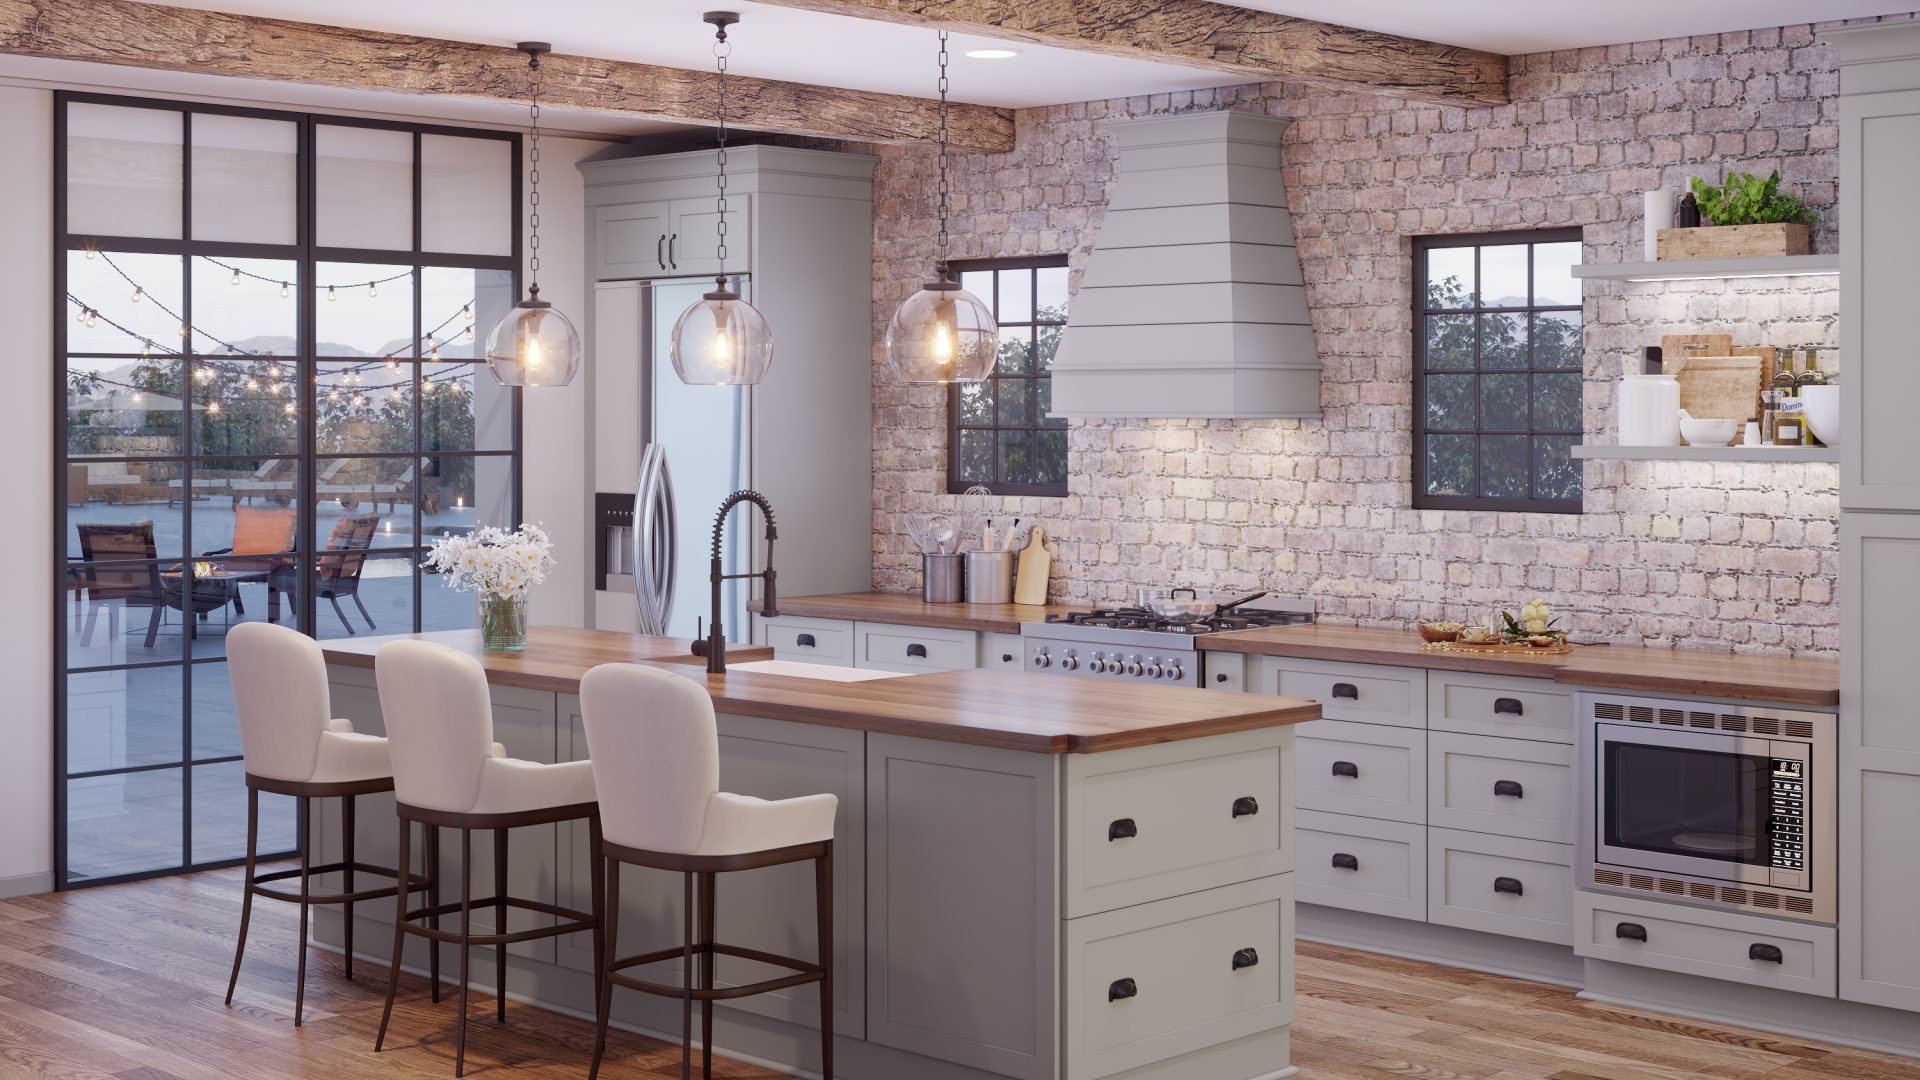 Shaker kitchen cabinets available as ready-to-assemble (RTA) cabinets